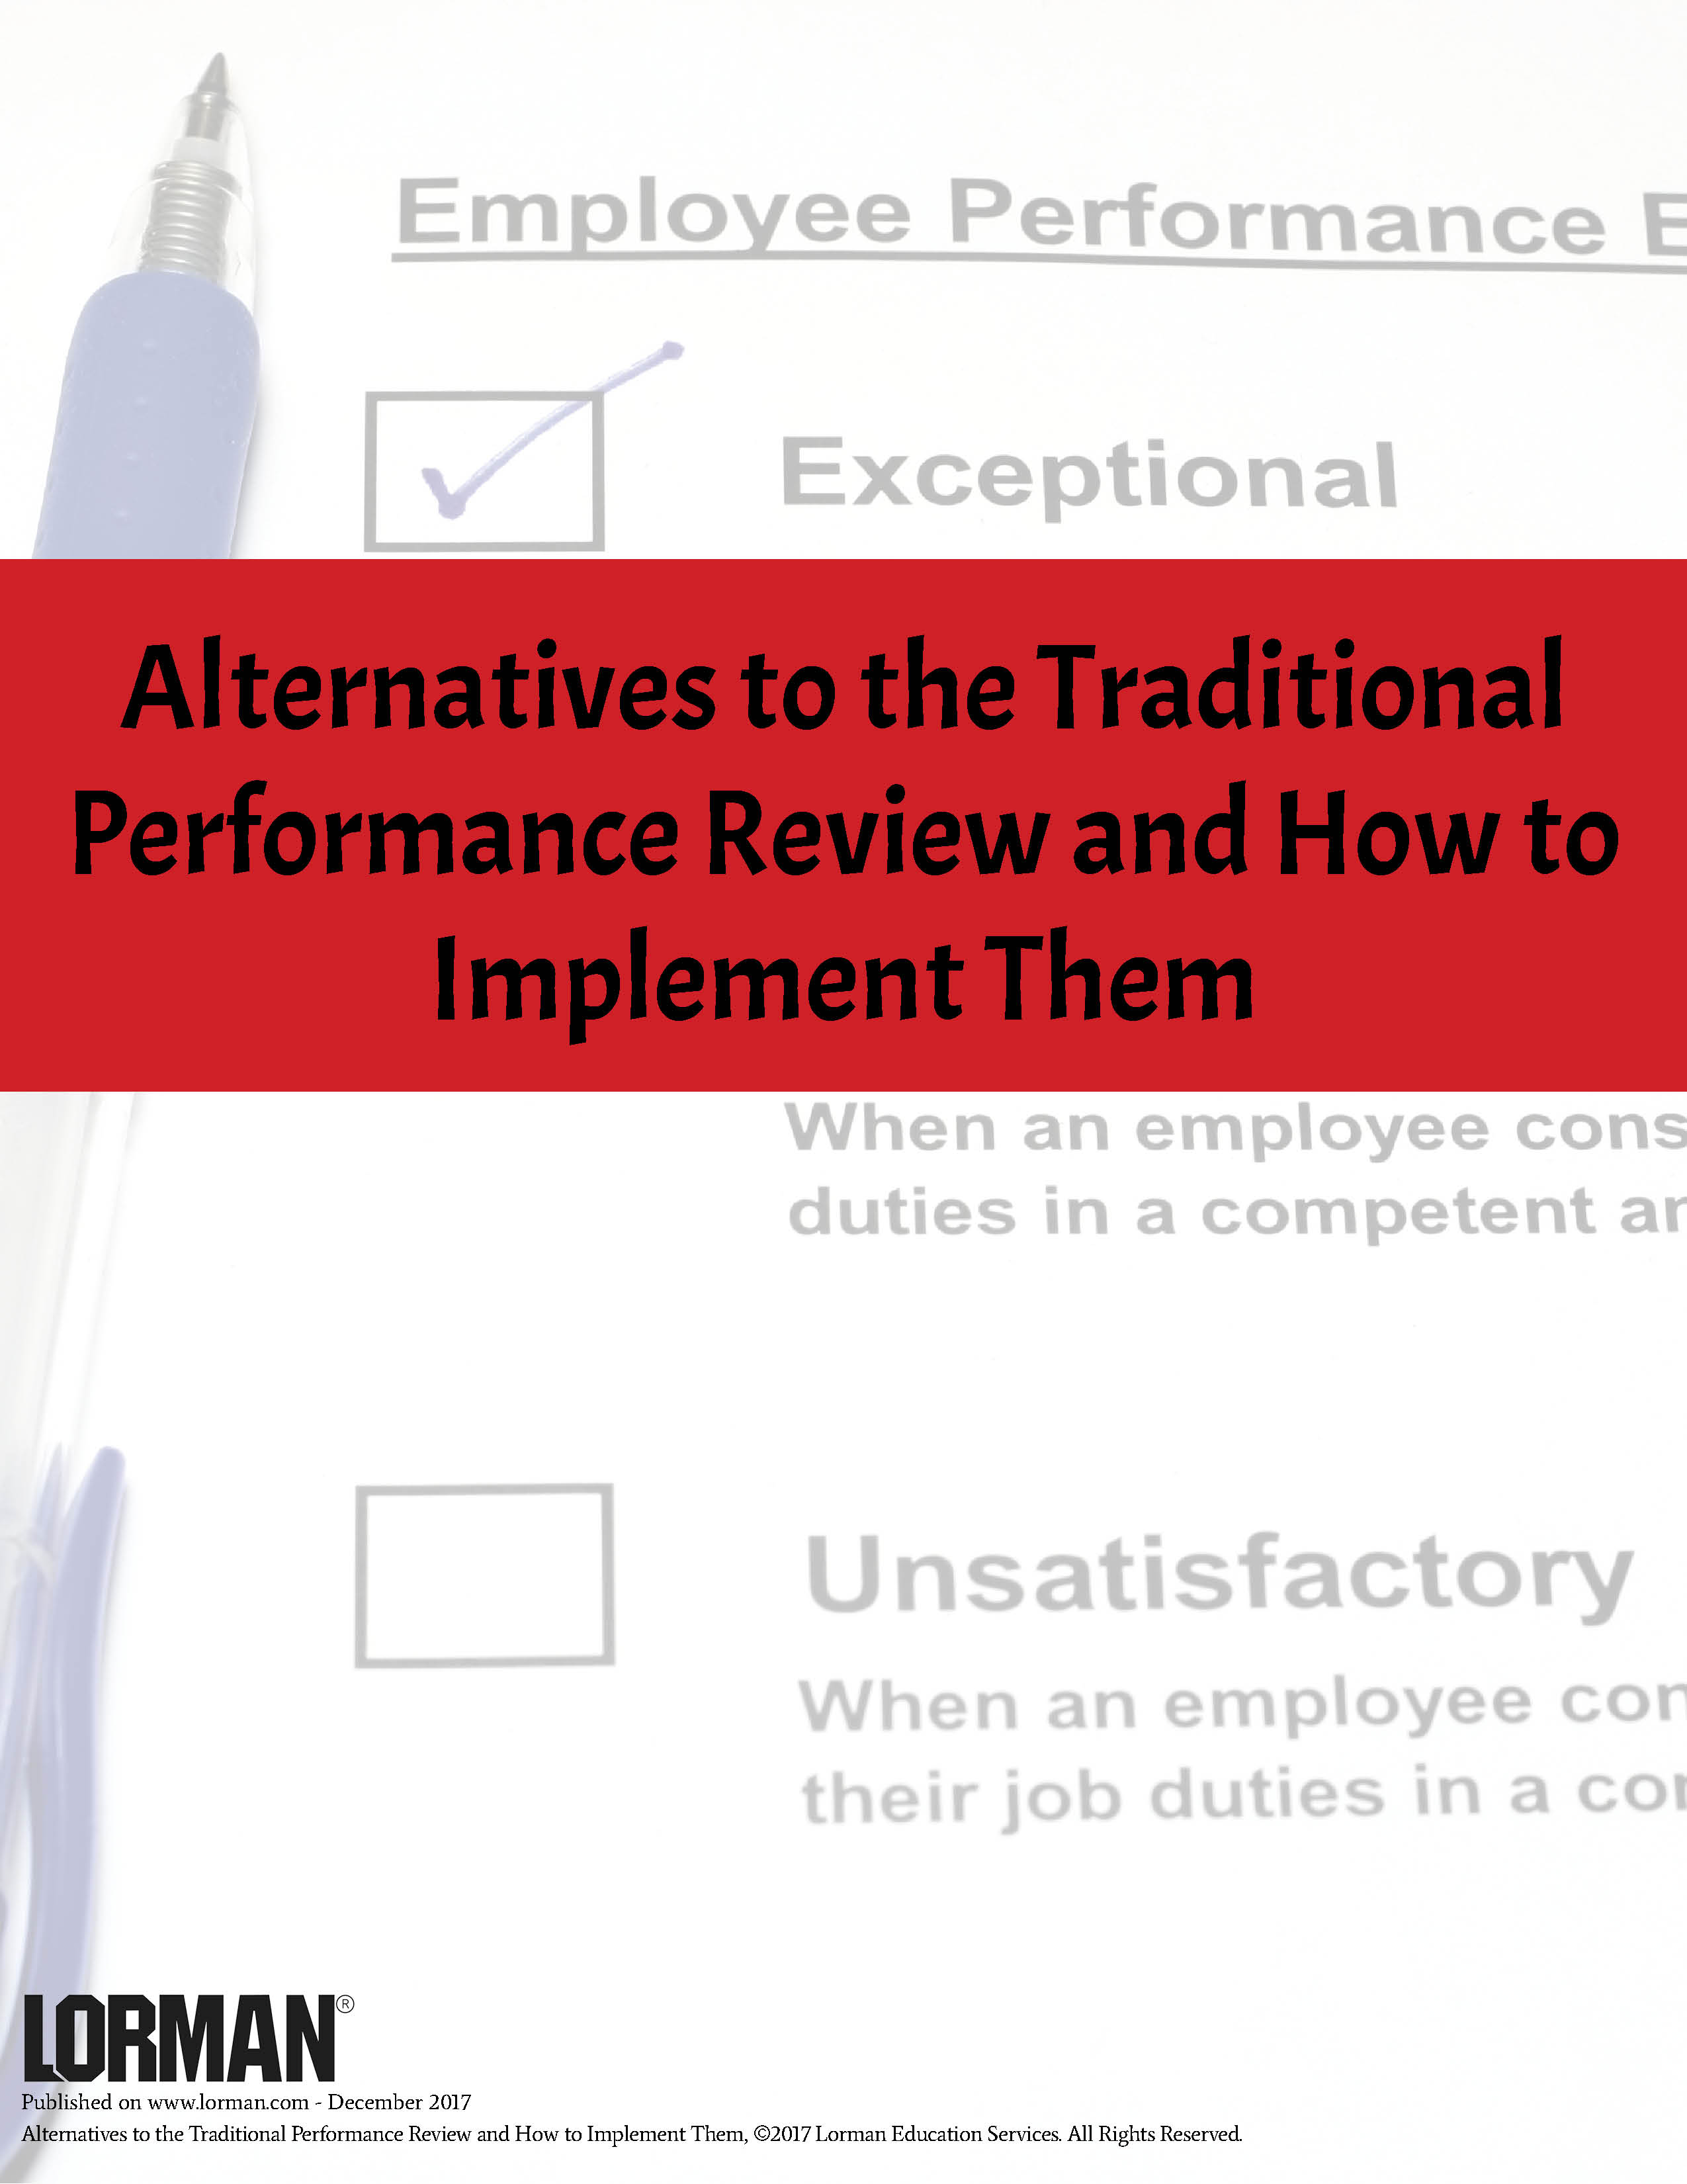 Alternatives To The Traditional Performance Review And How To Implement Them